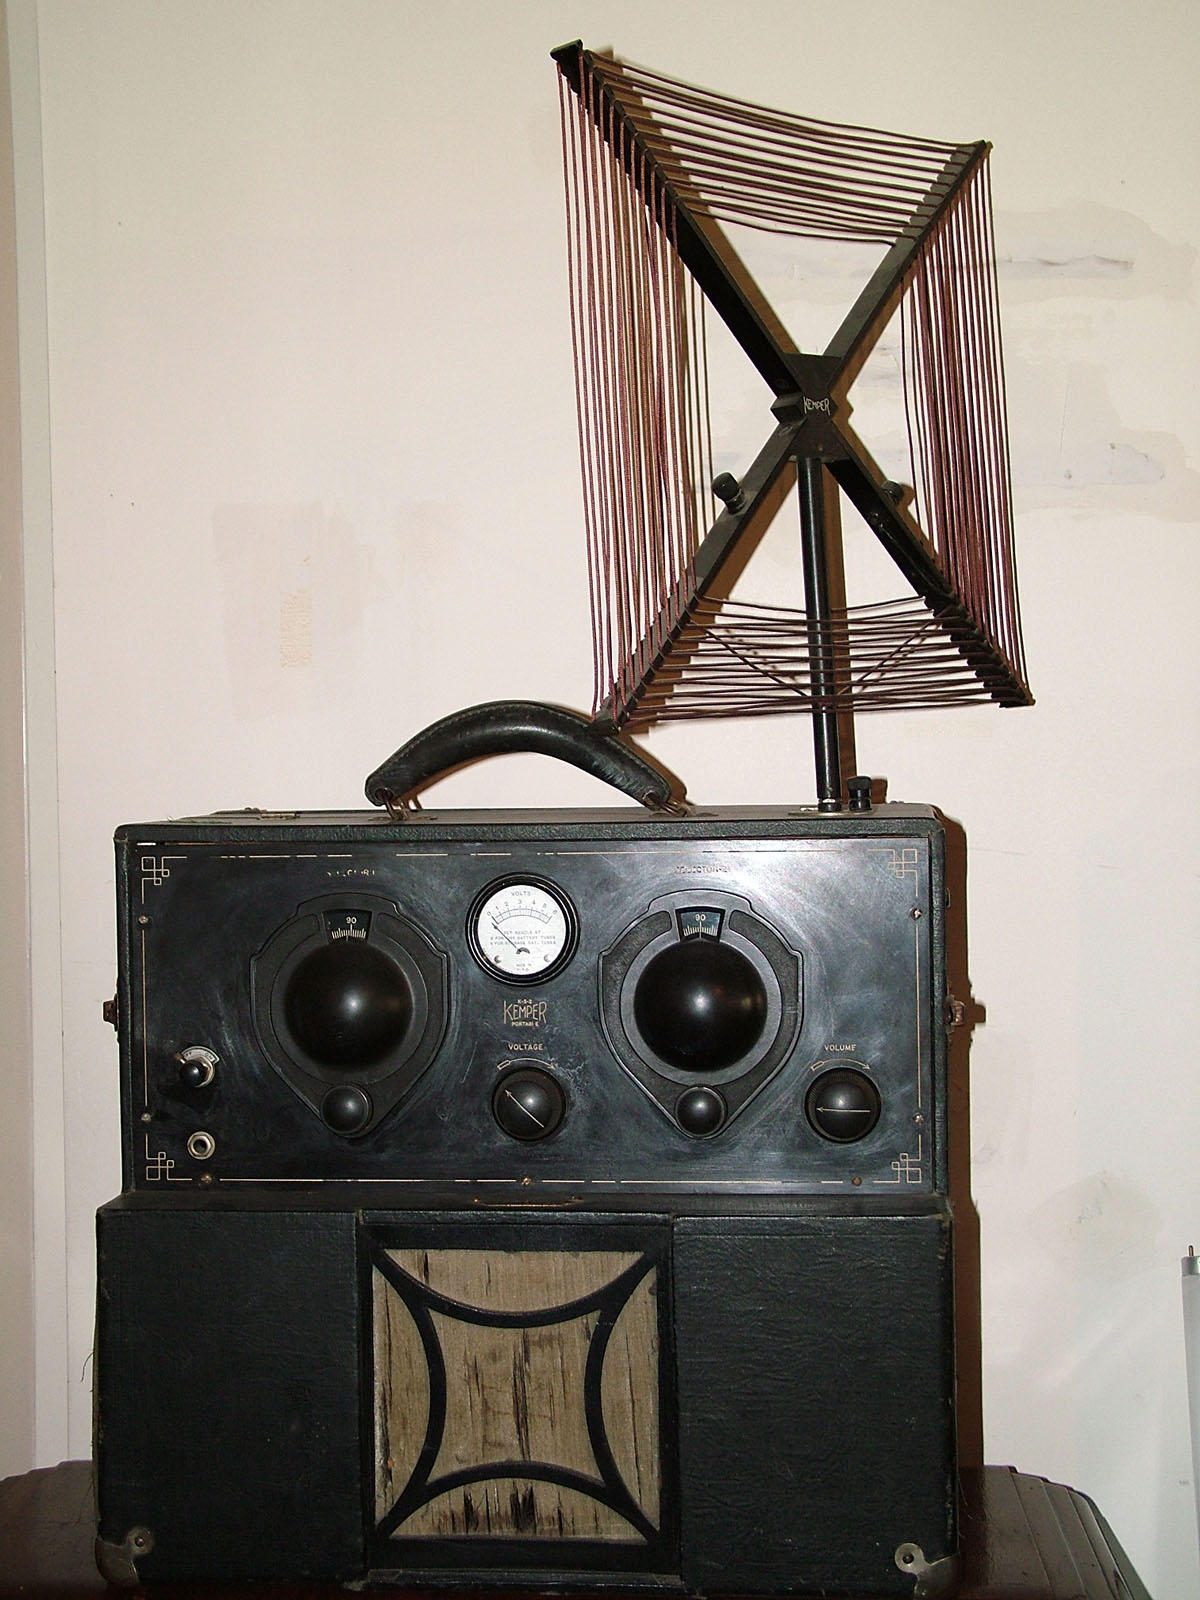 radio museum - radio 1 by JensStockCollection